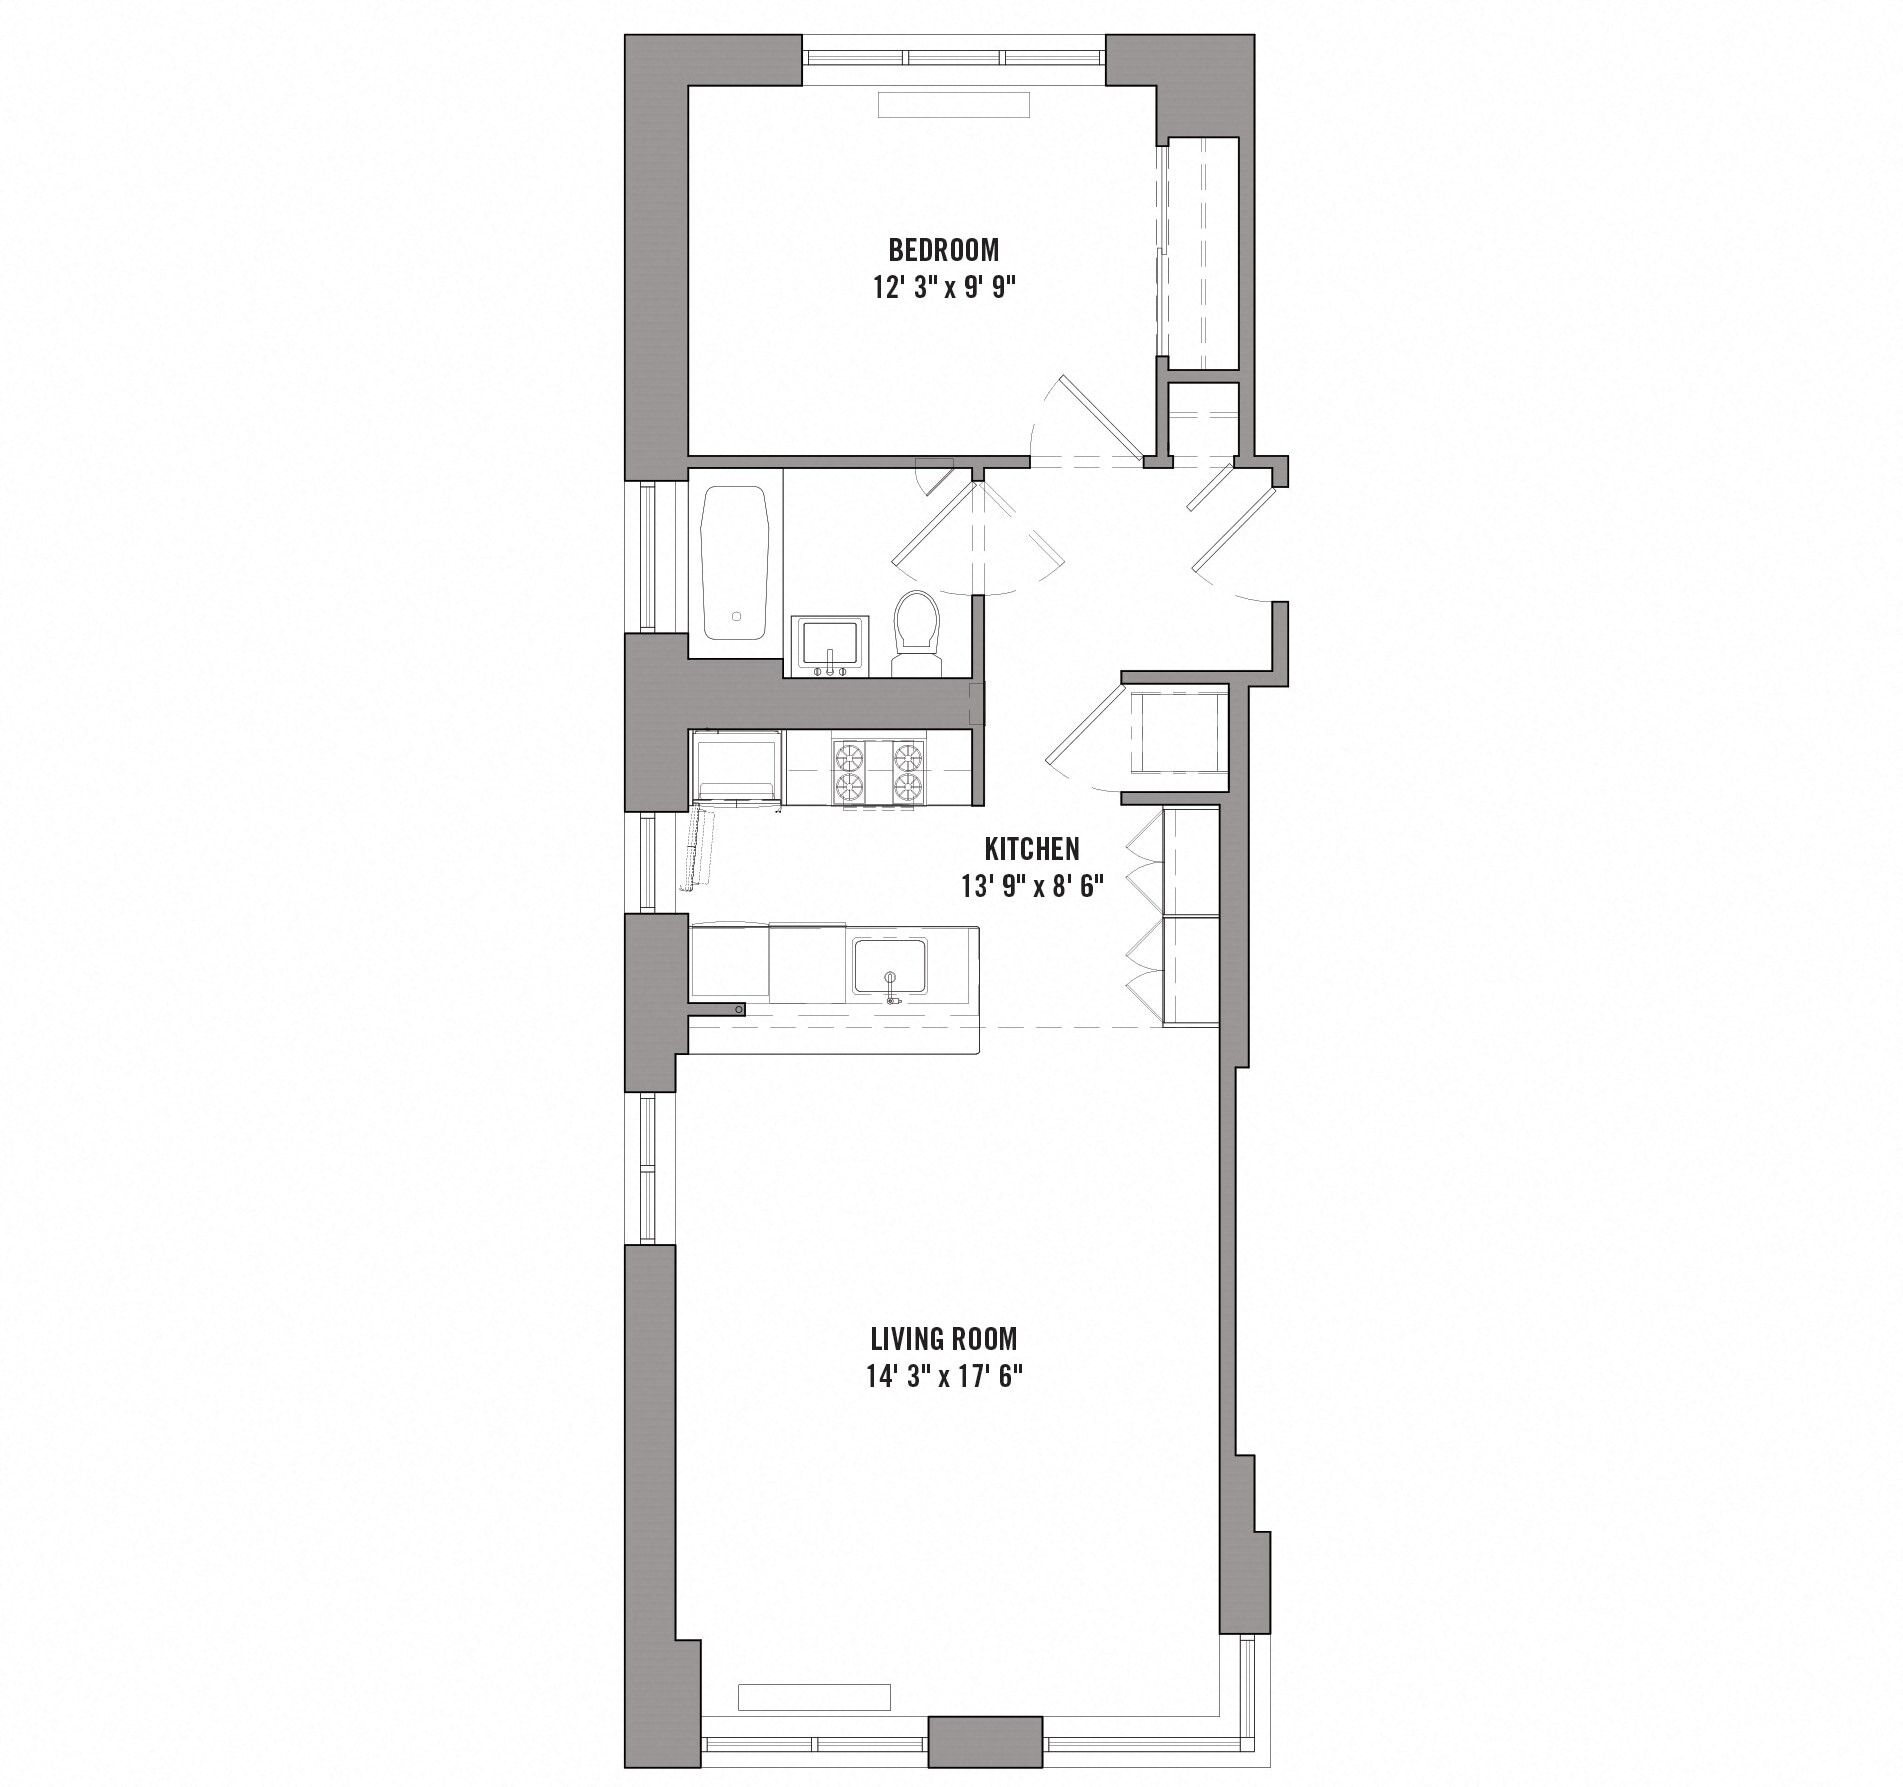 Floor plan diagram for unit C 2 30. 1 bedroom, 1 bathroom, kitchen, and living room.